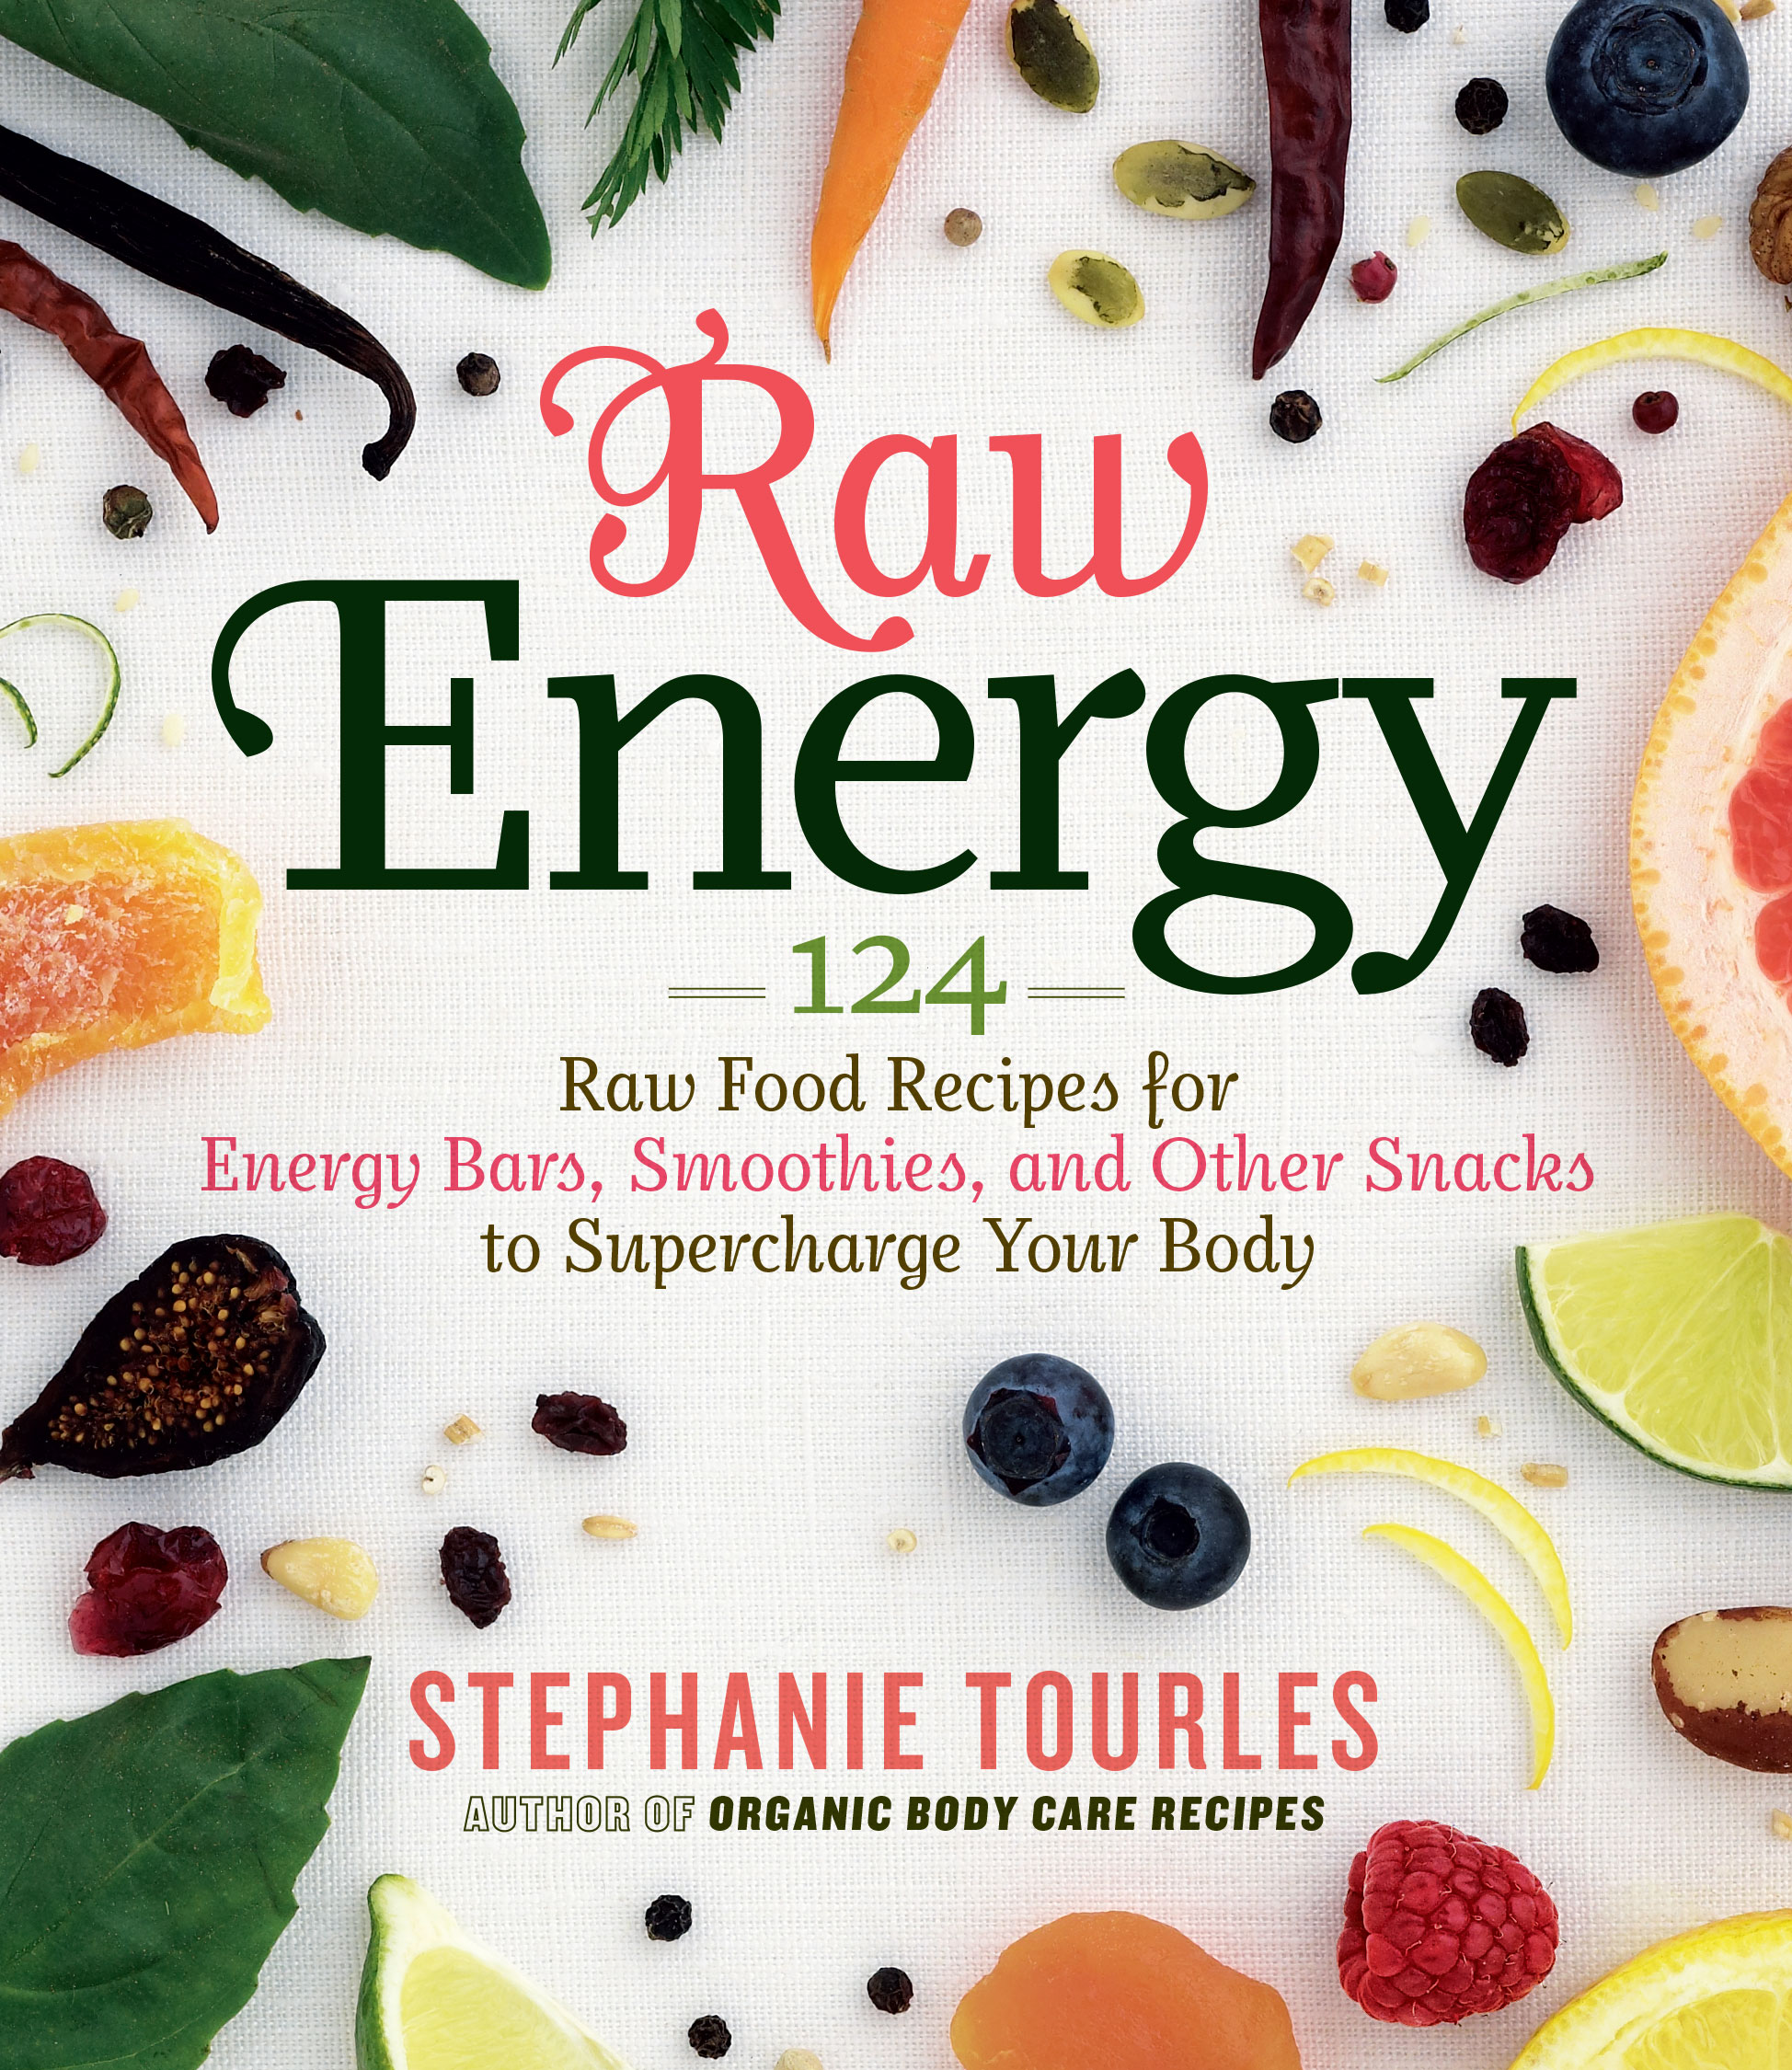 Raw Energy 124 Raw Food Recipes for Energy Bars, Smoothies, and Other Snacks to Supercharge Your Body - Stephanie L. Tourles